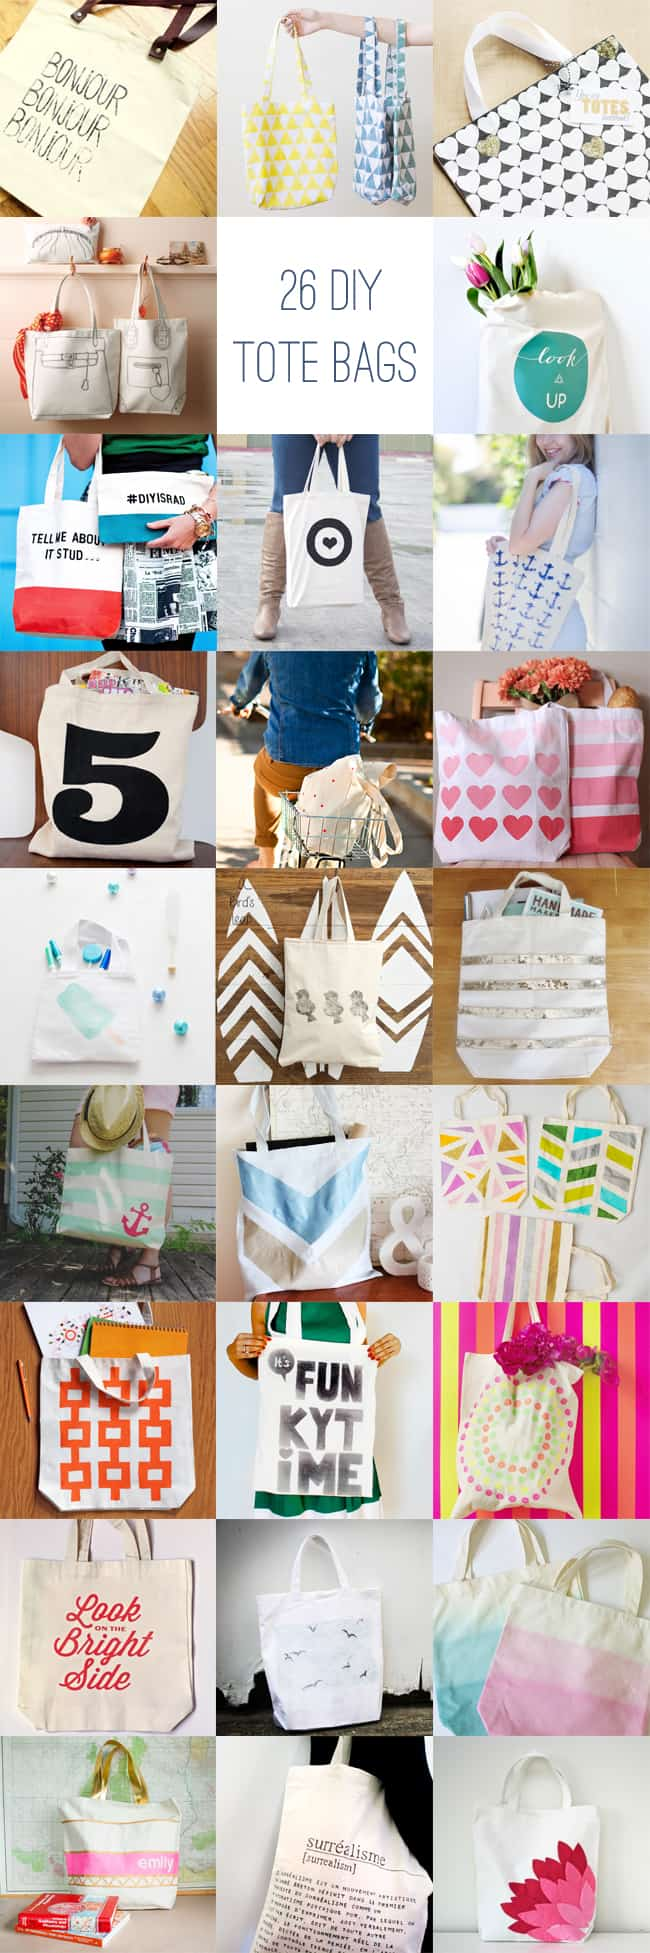 25 Ways to Decorate a Plain Tote Bag | HelloGlow.co